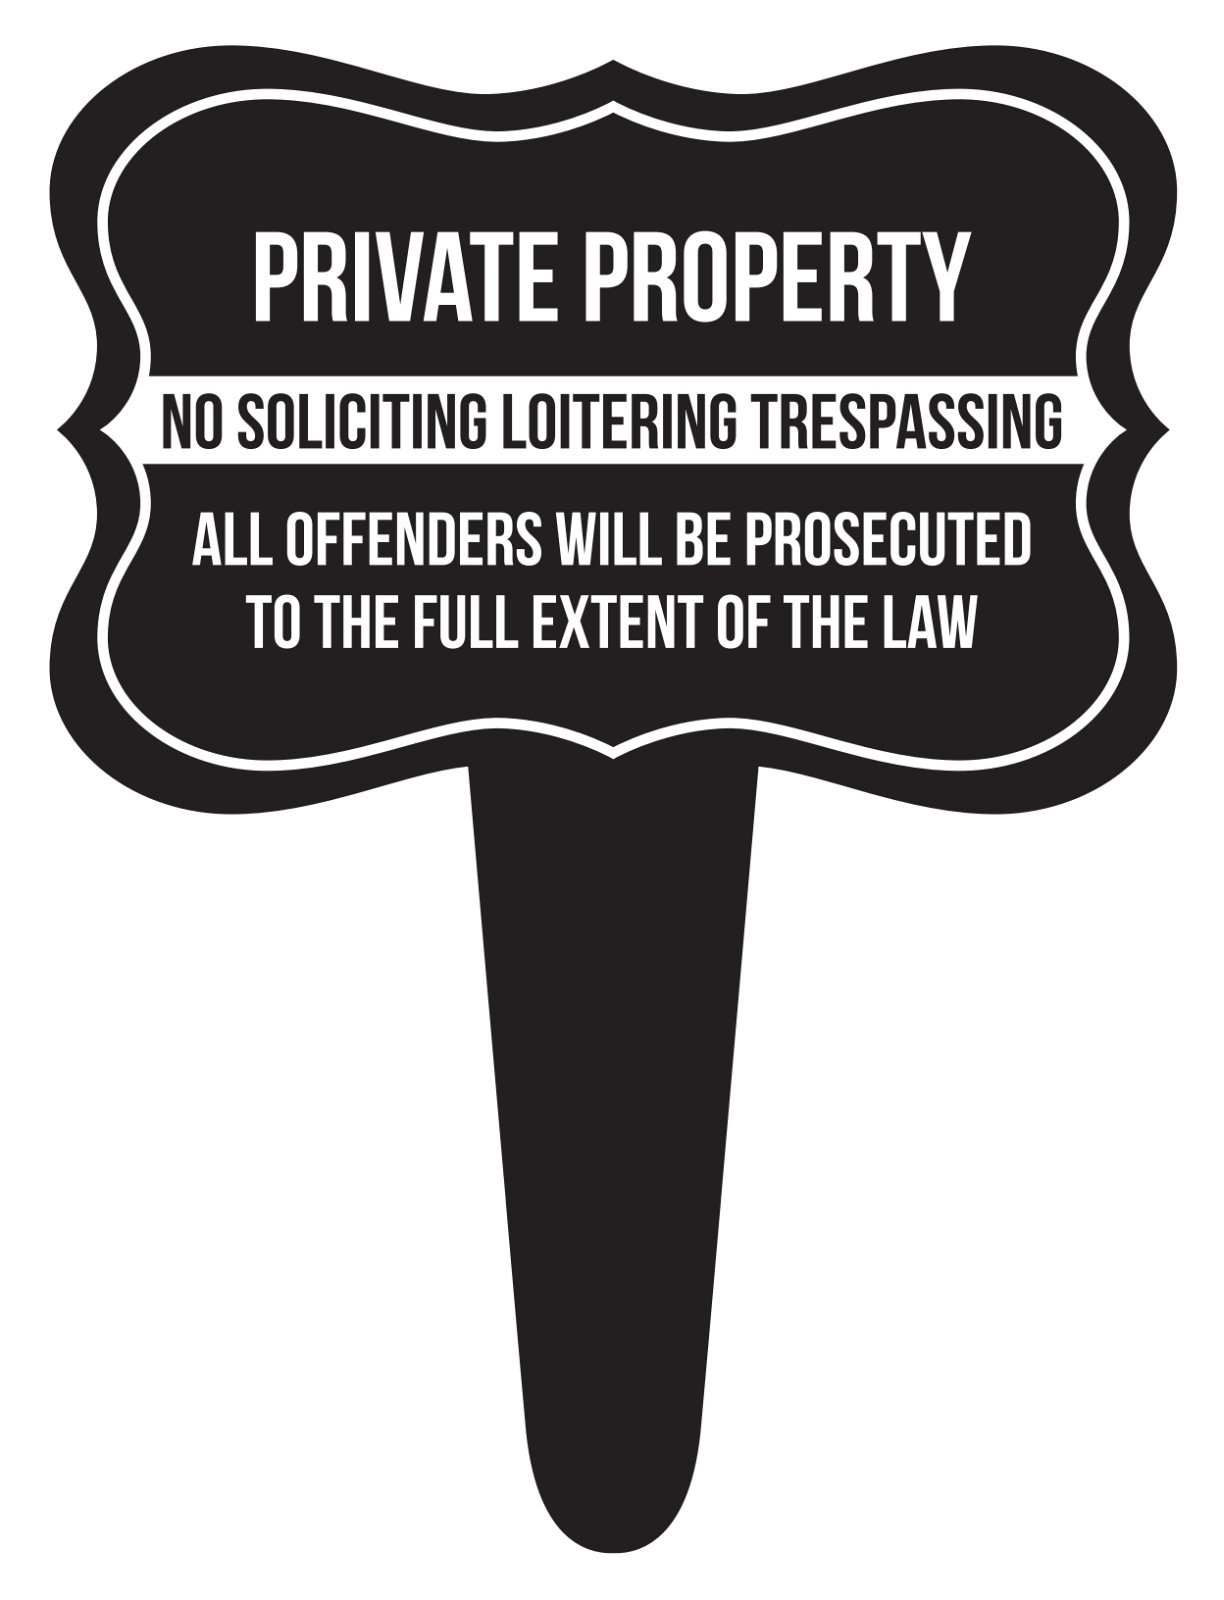 iCandy Combat Private Property No Soliciting Loitering Trespassing Home Yard Lawn Sign, Black, 12x16